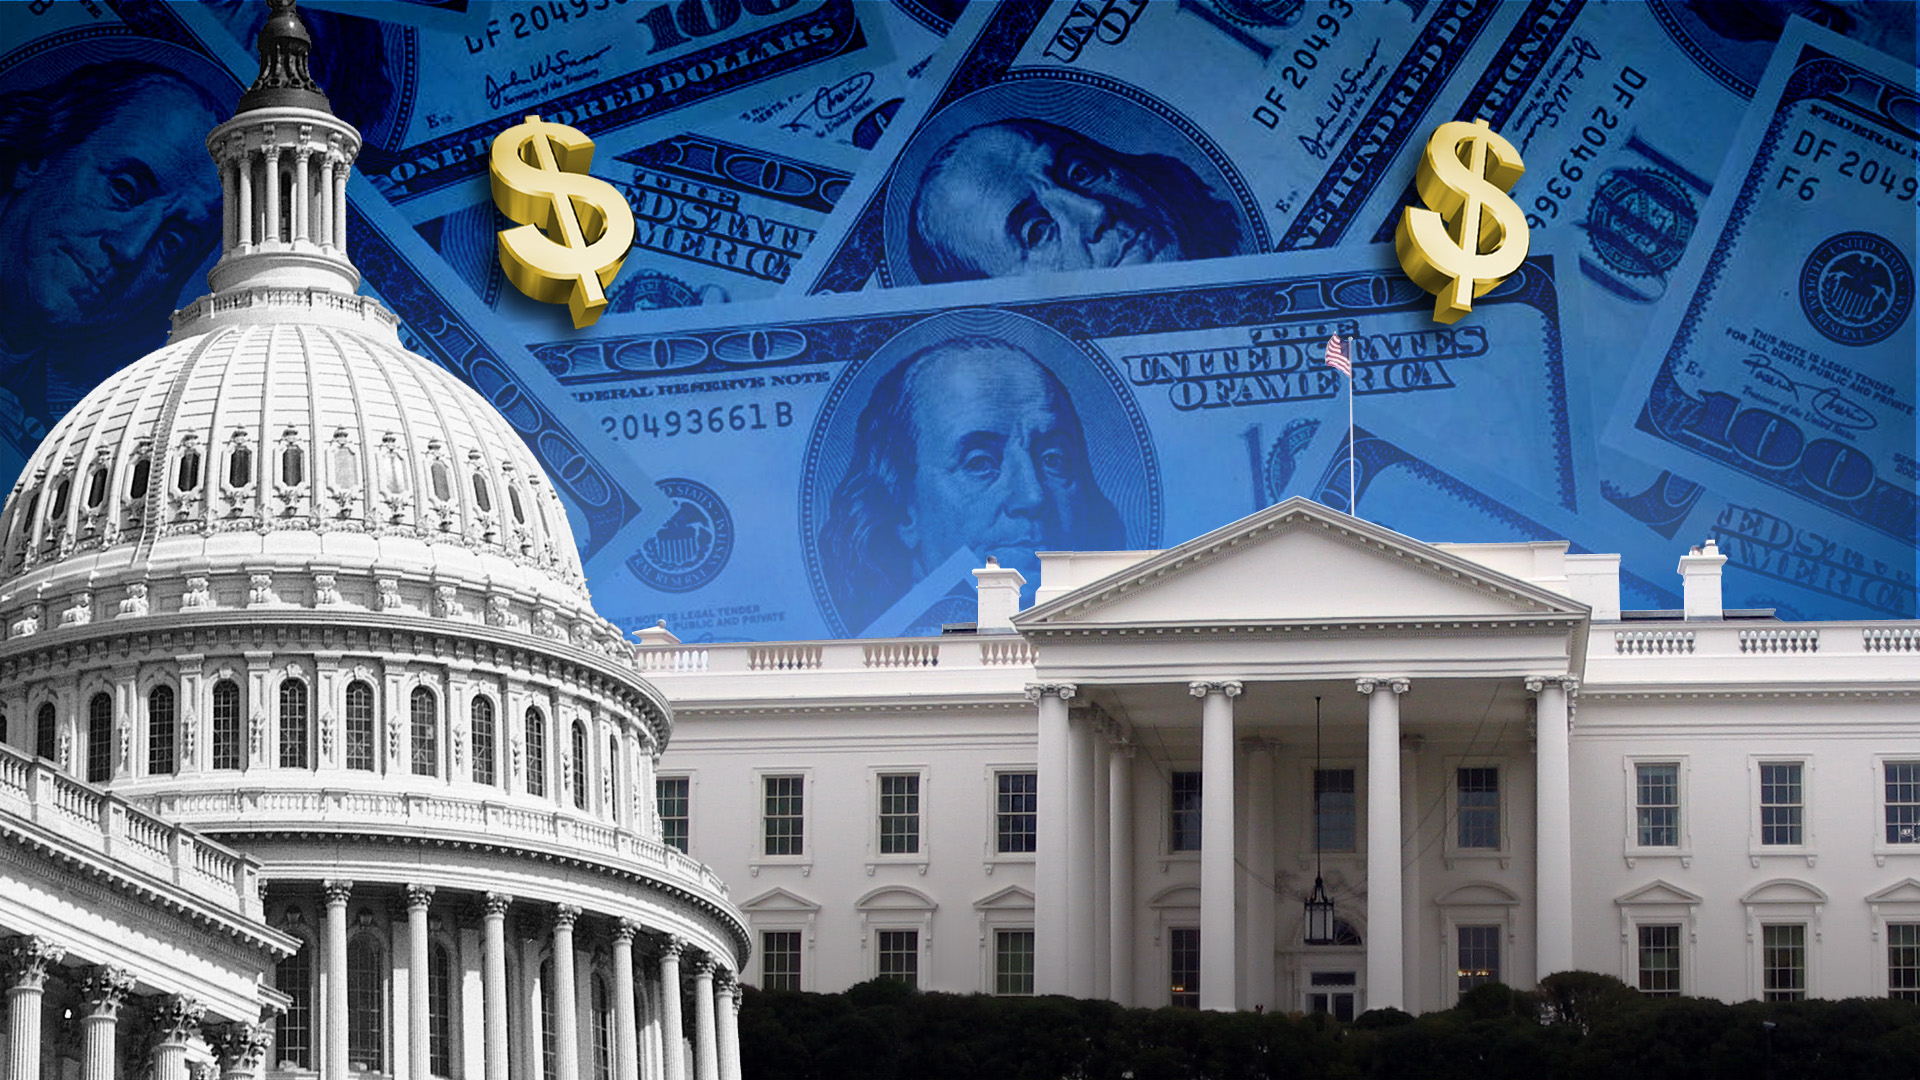 show-me-the-money-monitor-capitol-dome-white-house-money